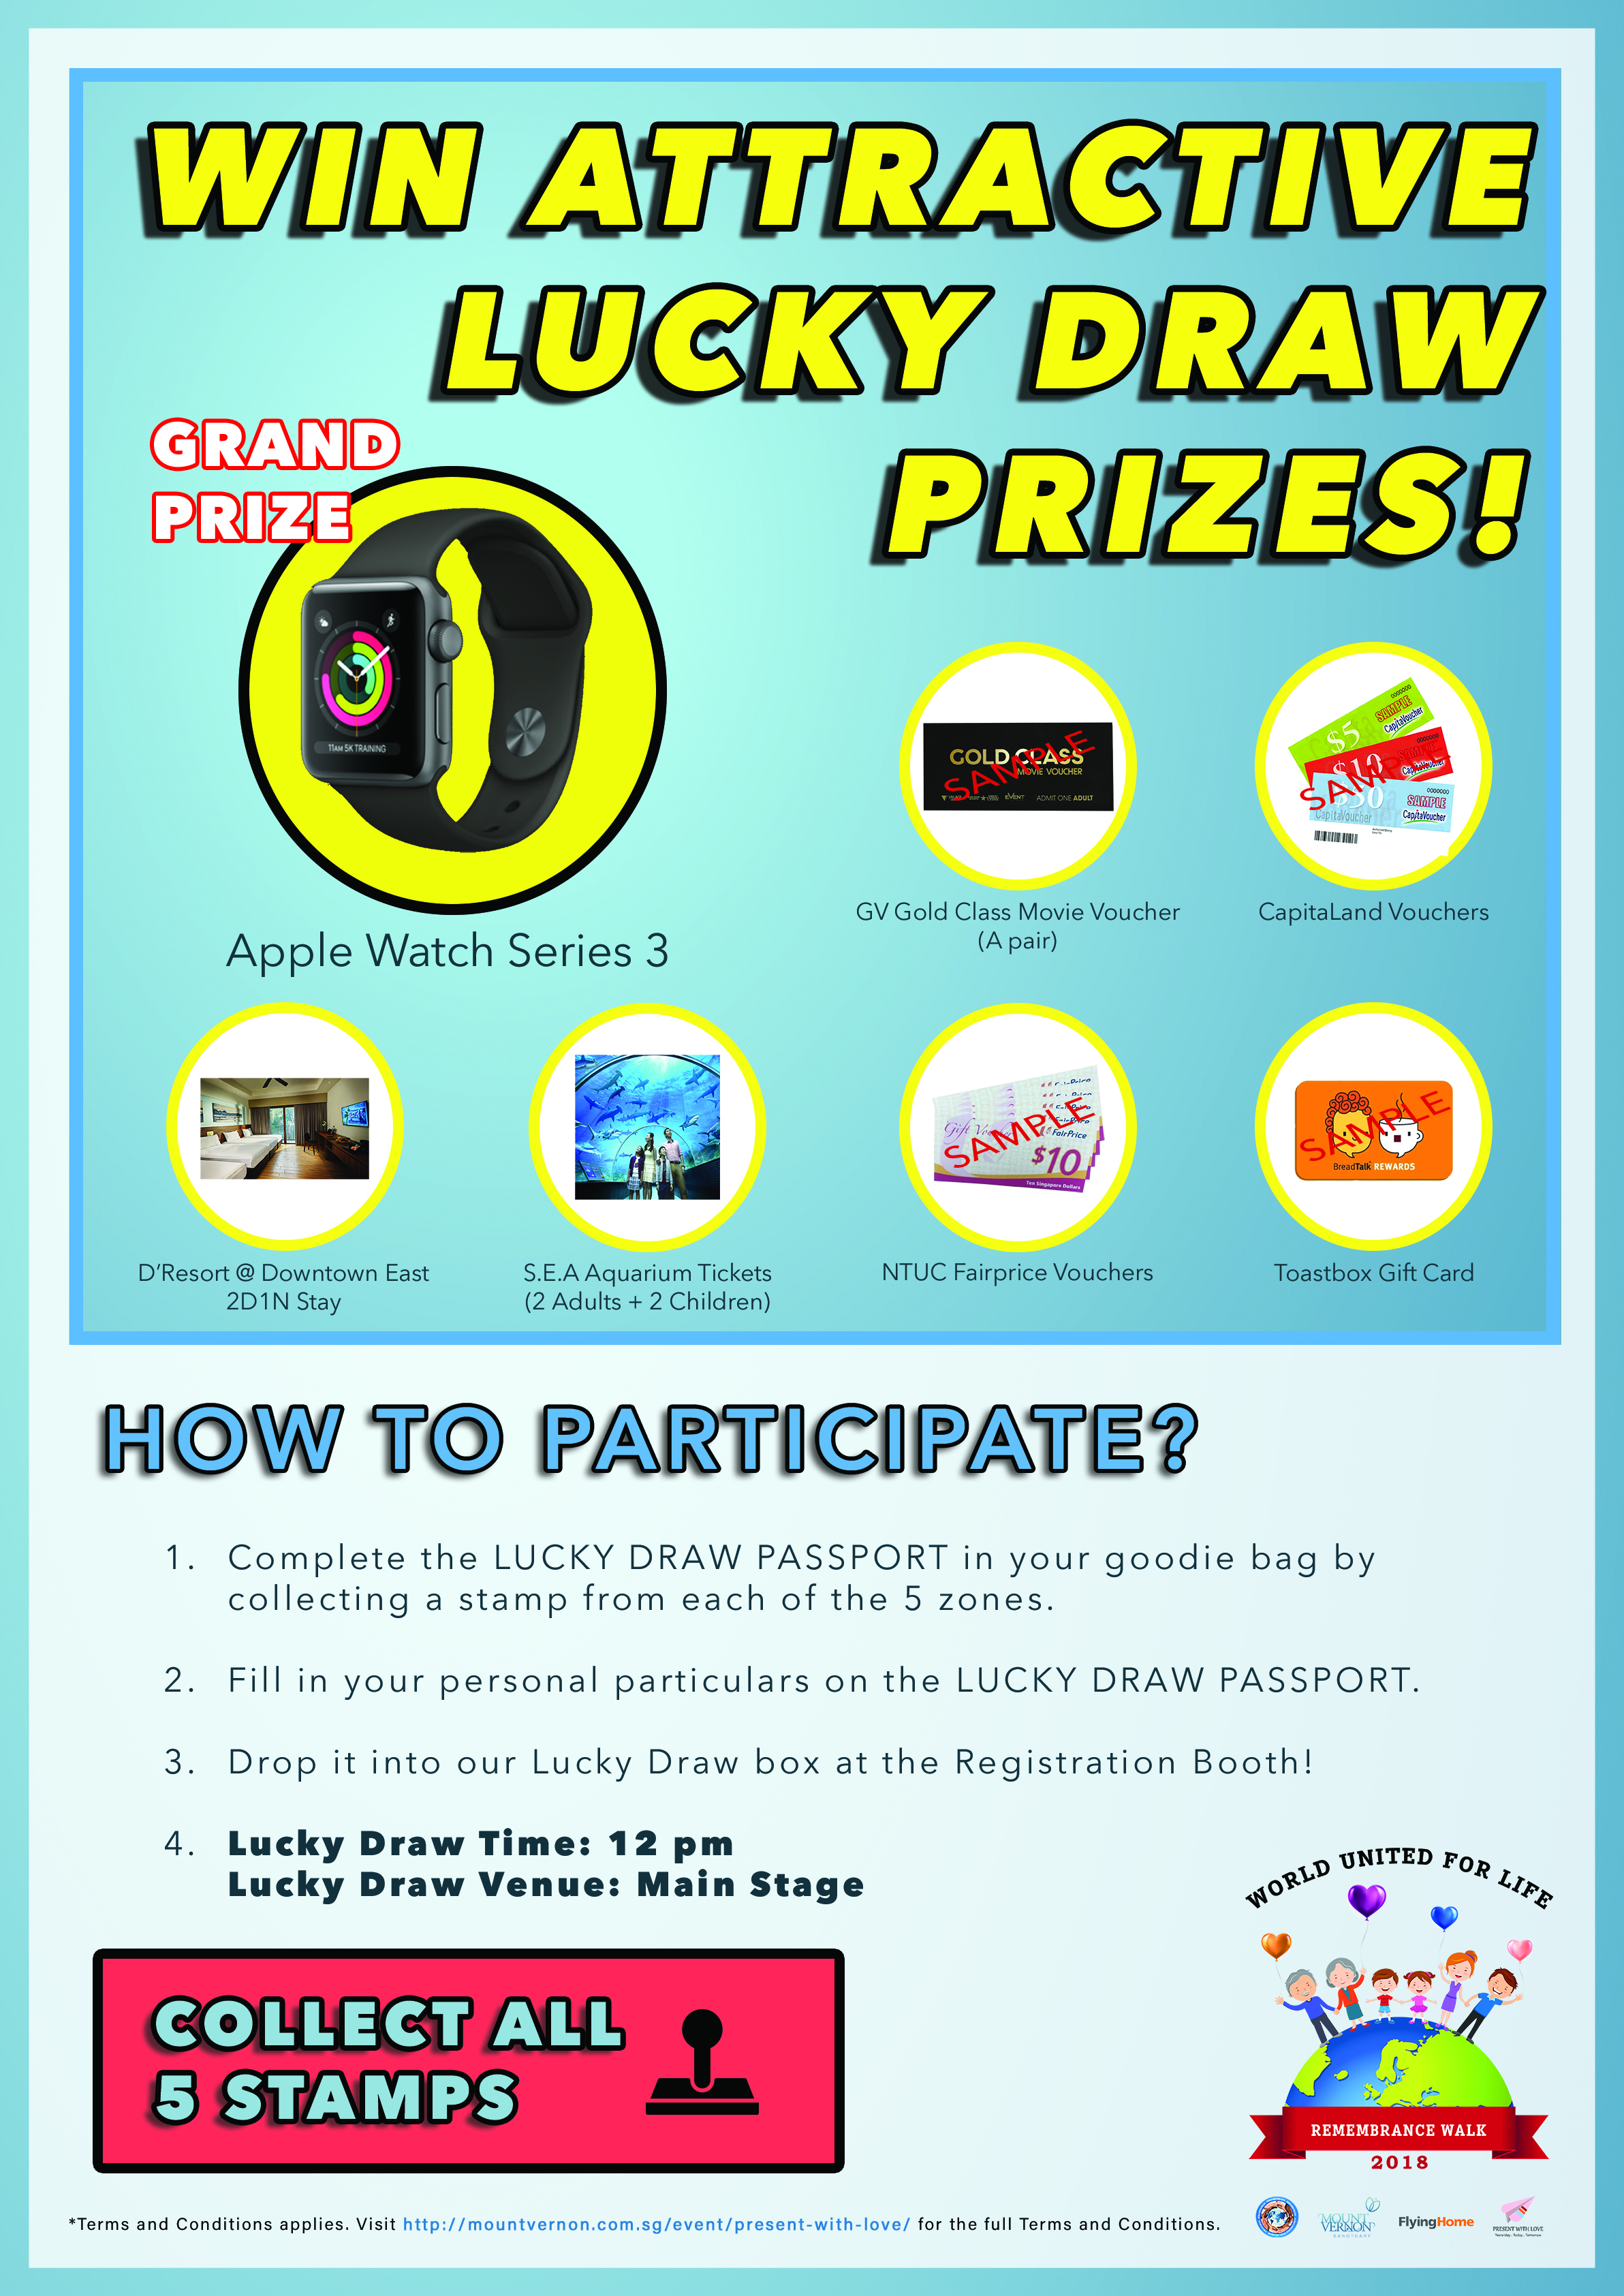 Win attractive lucky draw prizes!!!